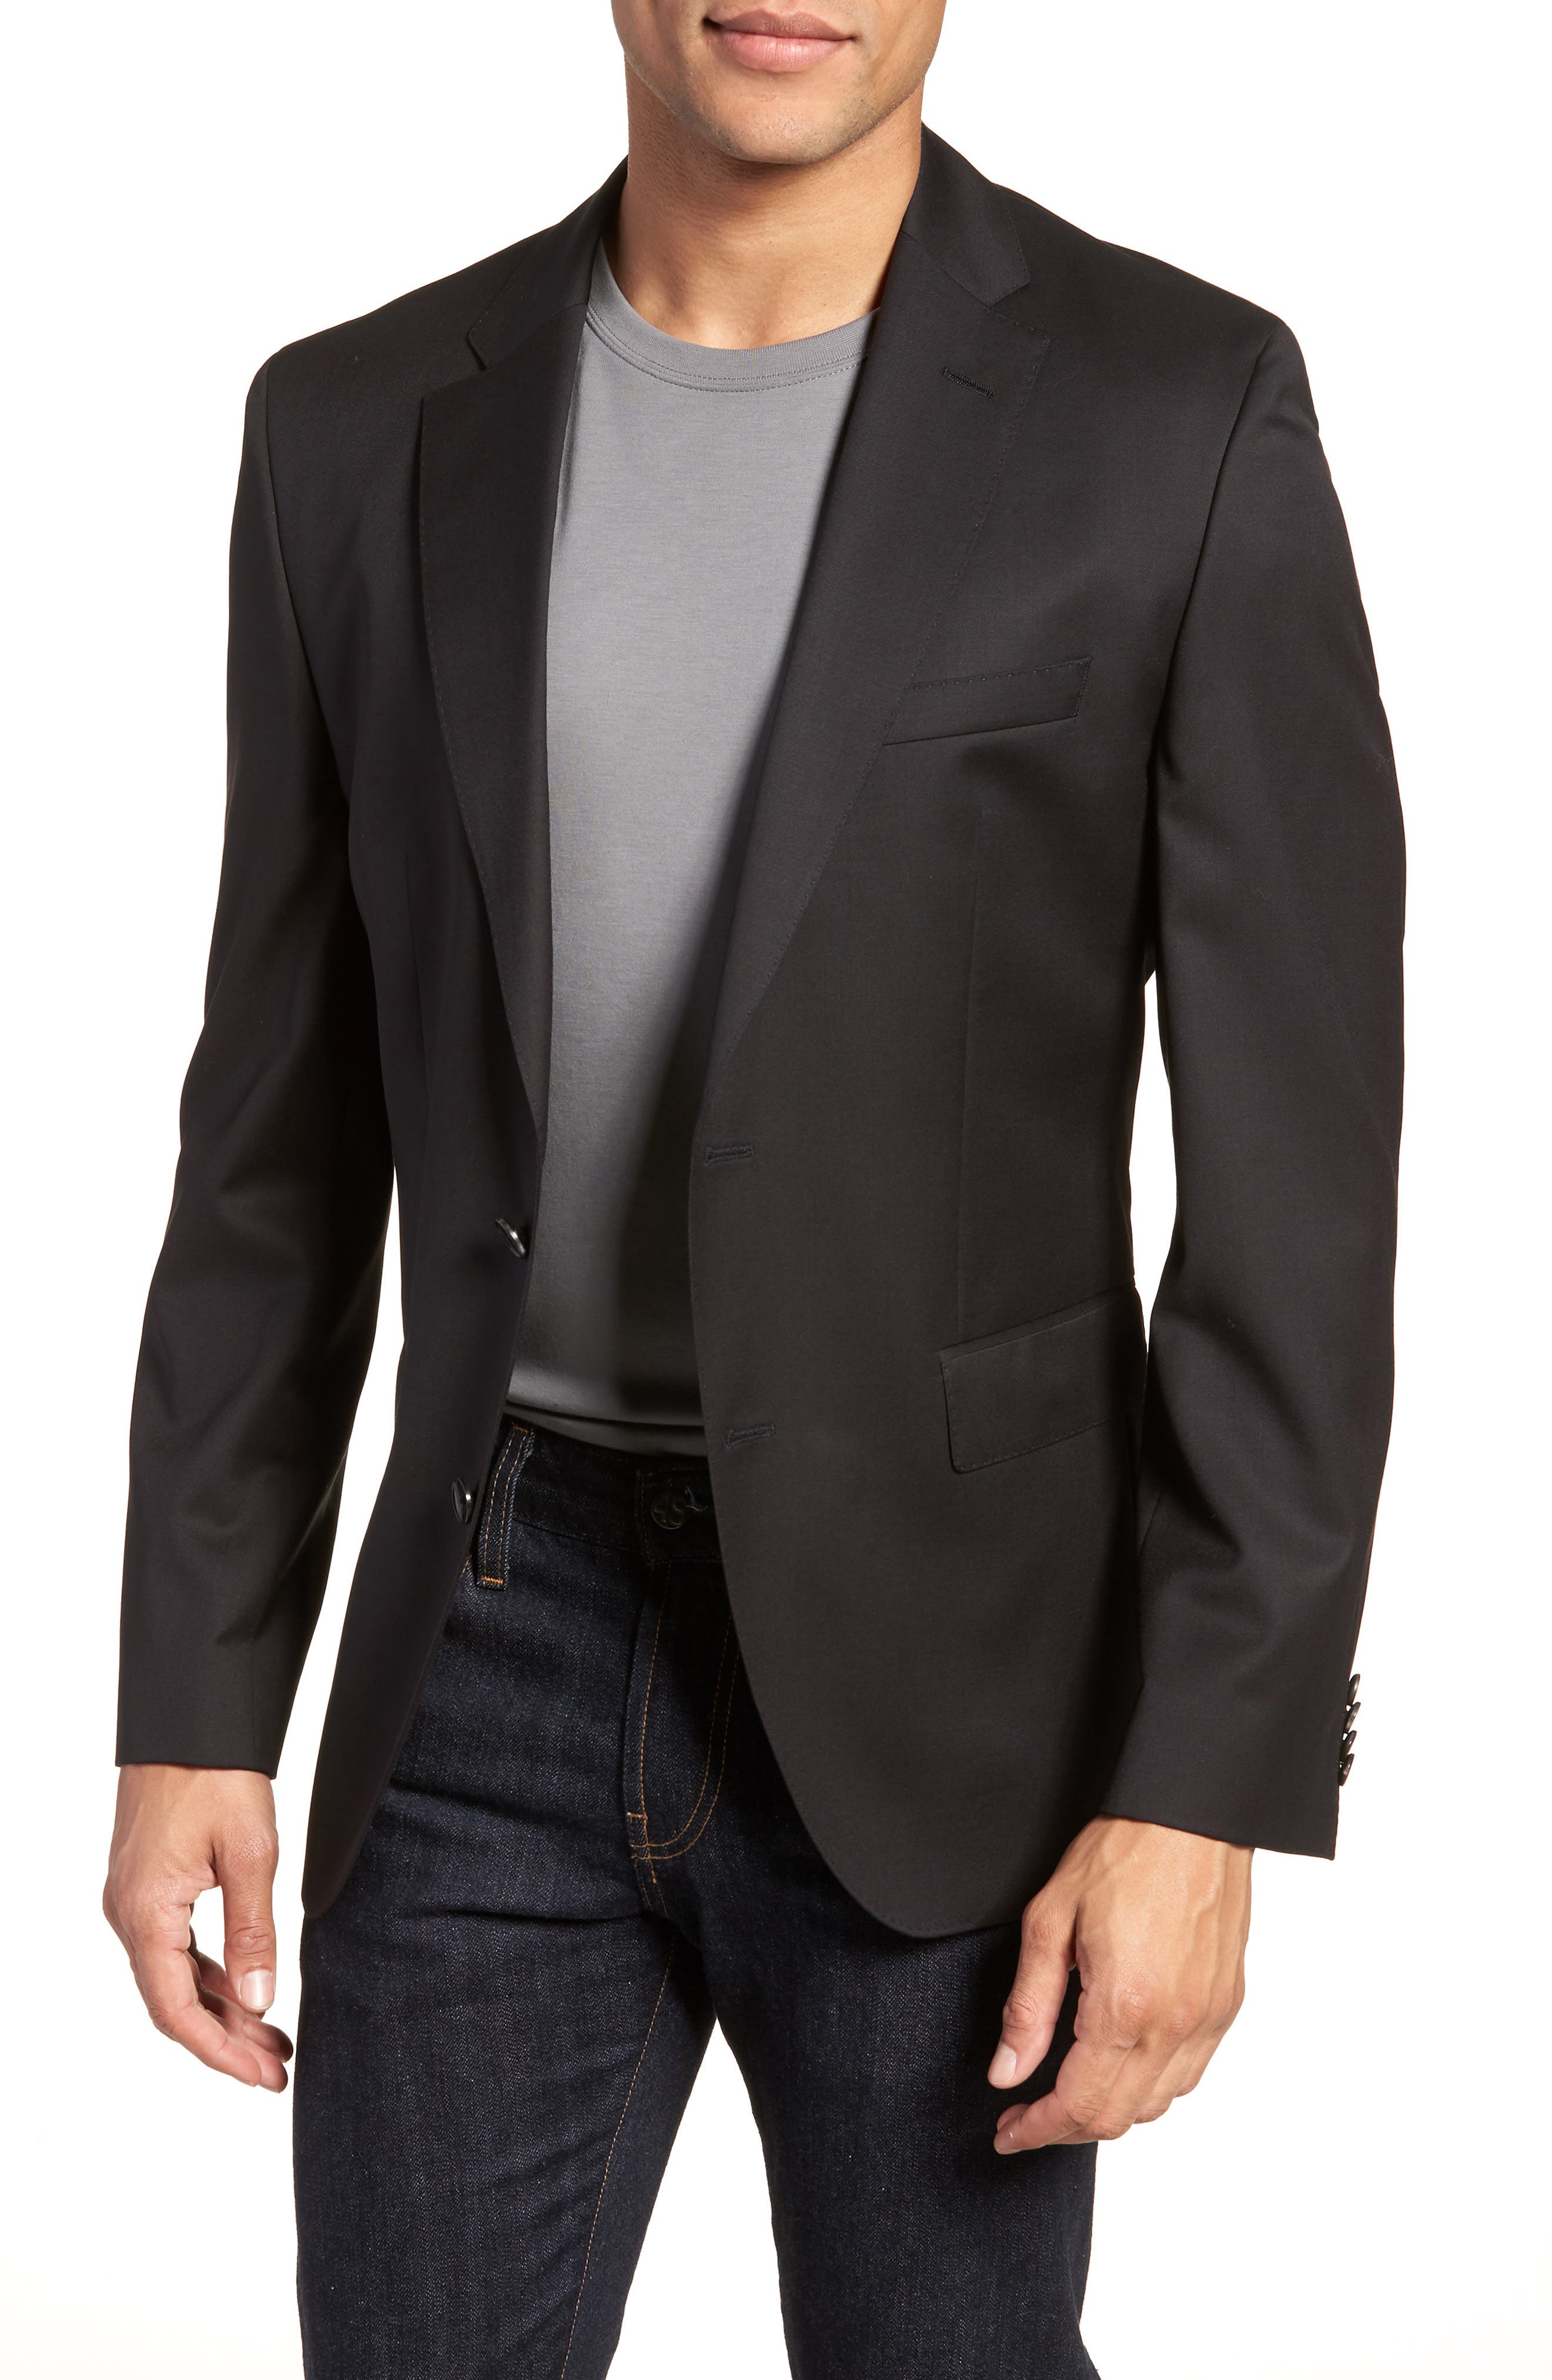 BOSS, Johnstons CYL Classic Fit Solid Wool Sport Coat, Main thumbnail 1, color, BLACK